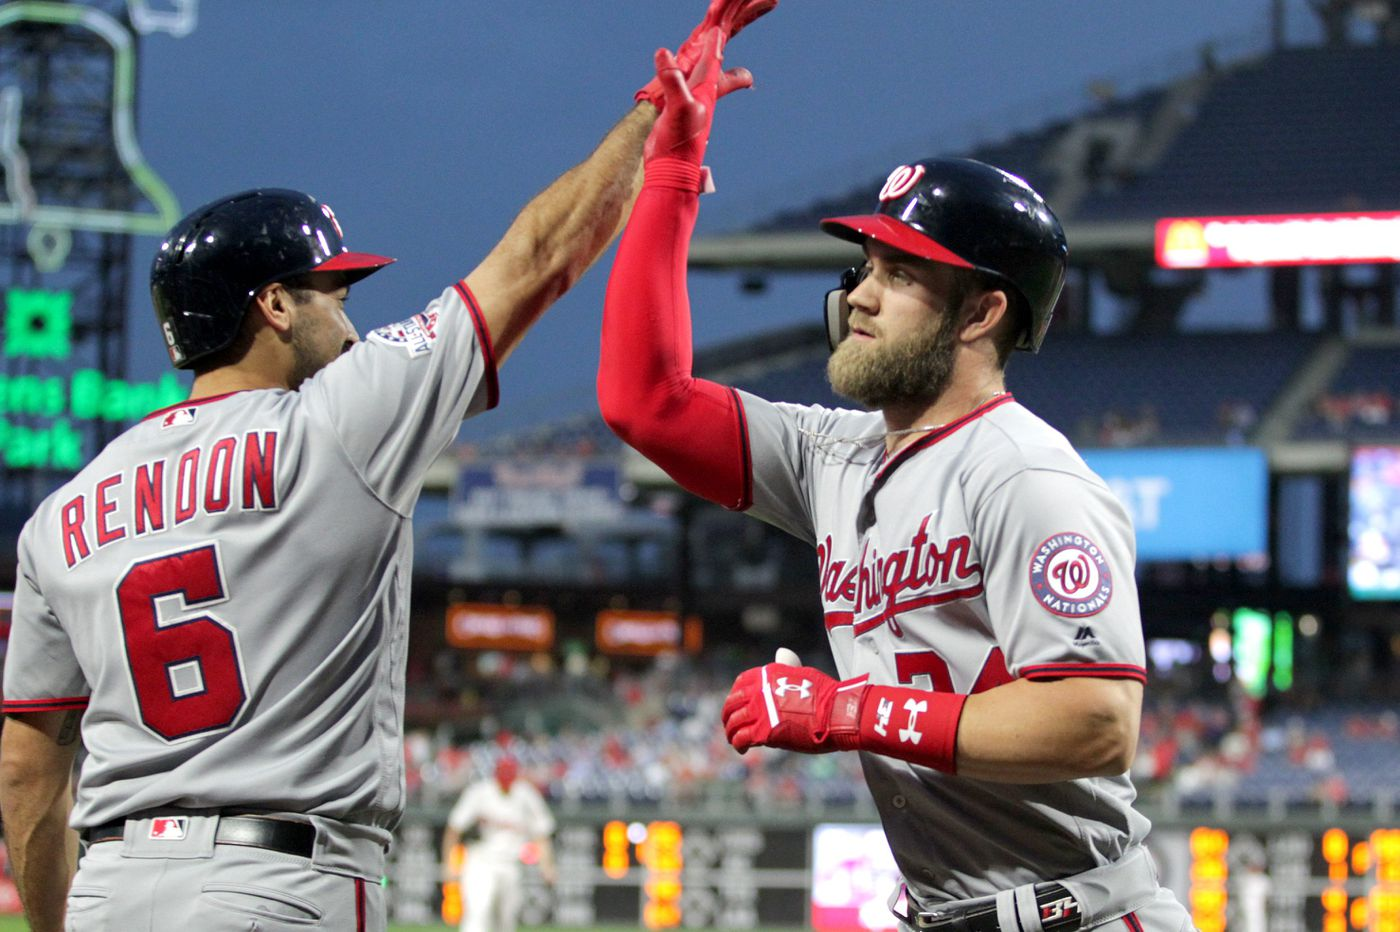 Phillies' push for Patrick Corbin could set up their pitch for Bryce Harper, and that's exactly what owner John Middleton wants | Bob Brookover